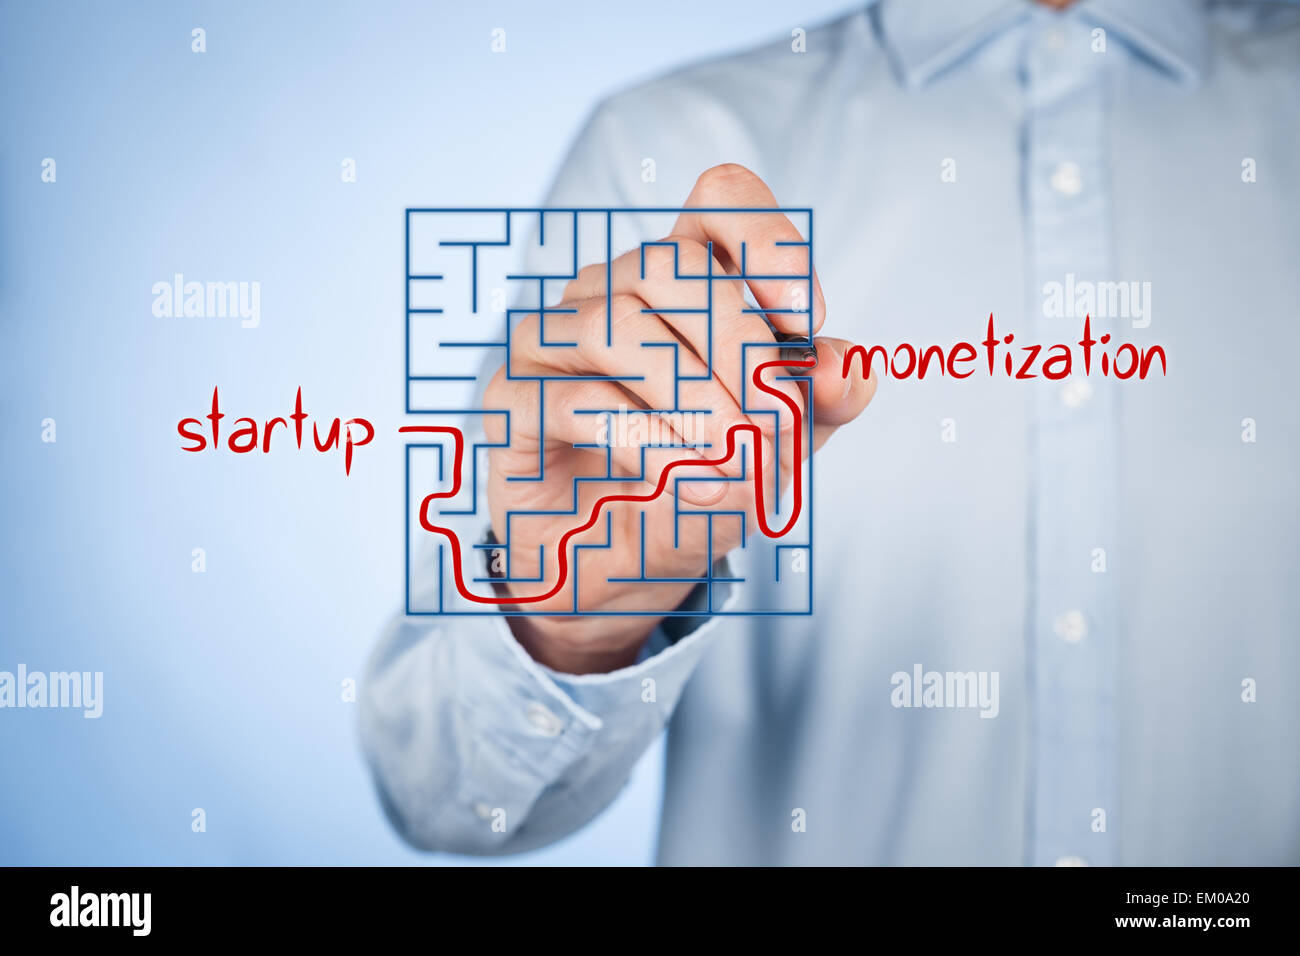 Long and difficult way from business startup to successful monetization. Businessman plan startup strategy and its - Stock Image